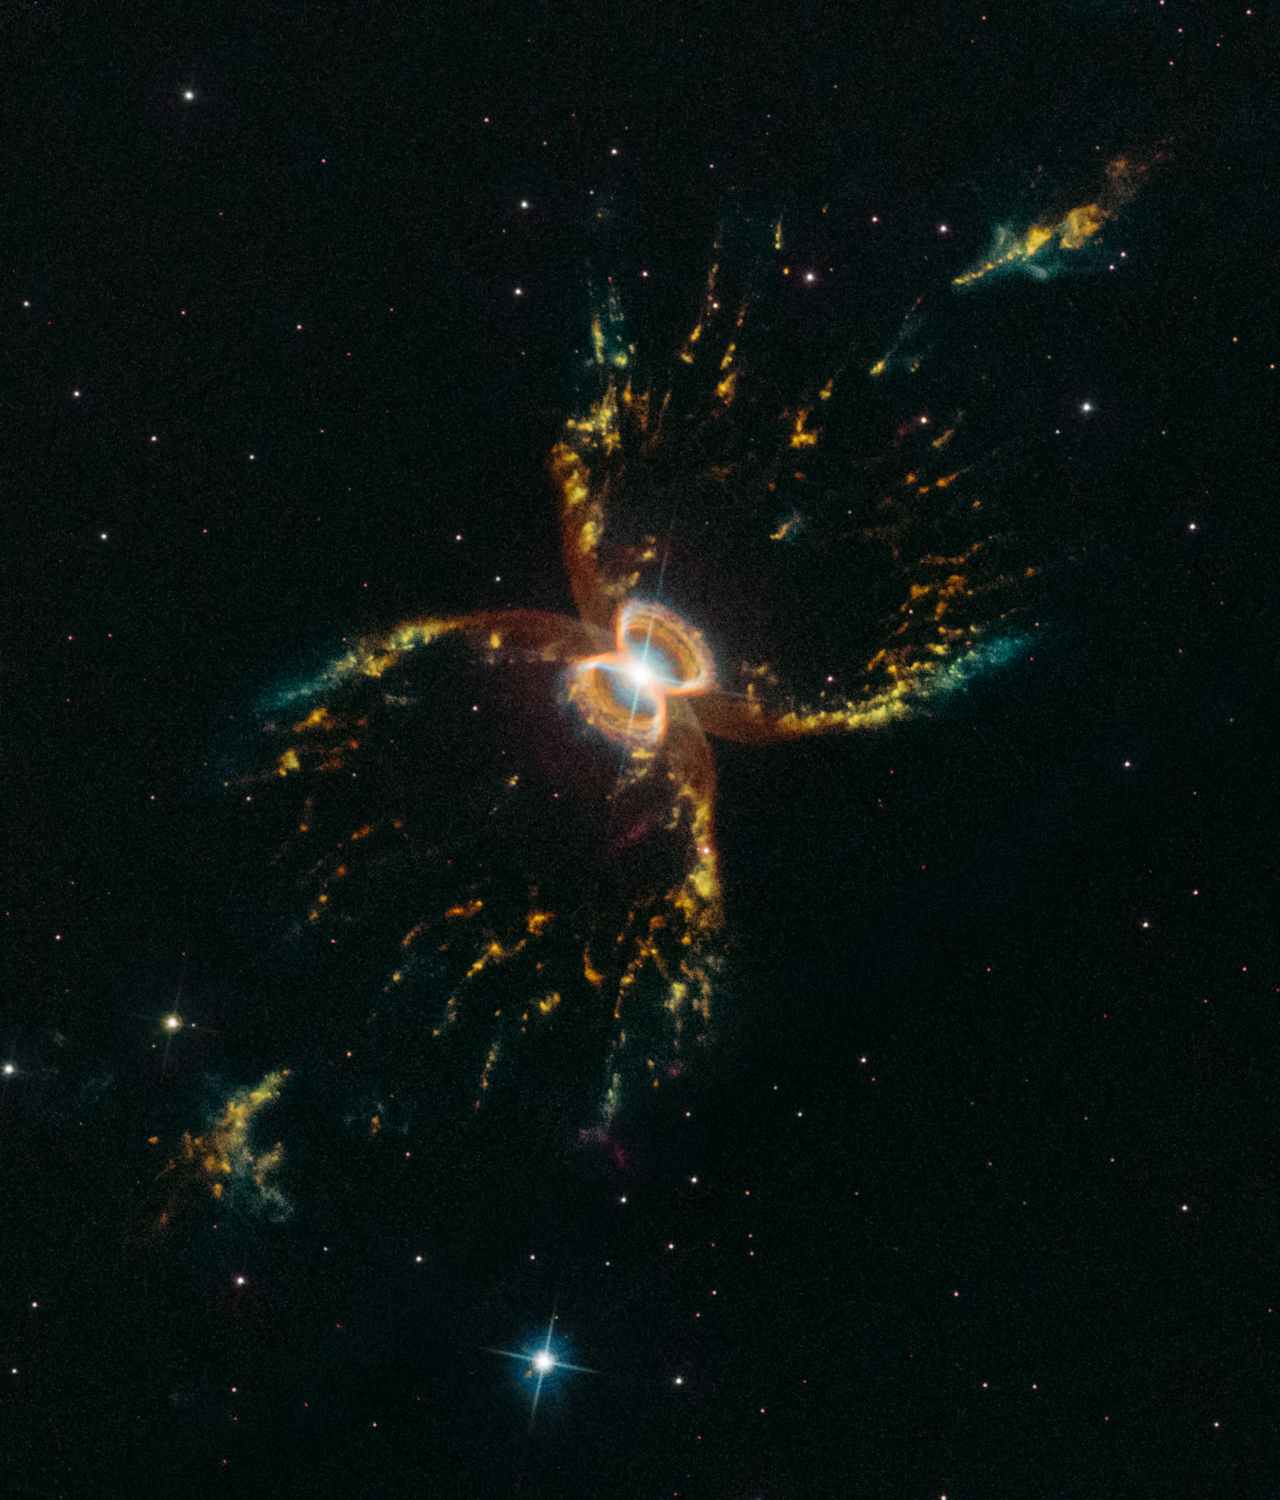 Hubble Captures Beautiful Picture Of Southern Crab Nebula For Its 29th Anniversary